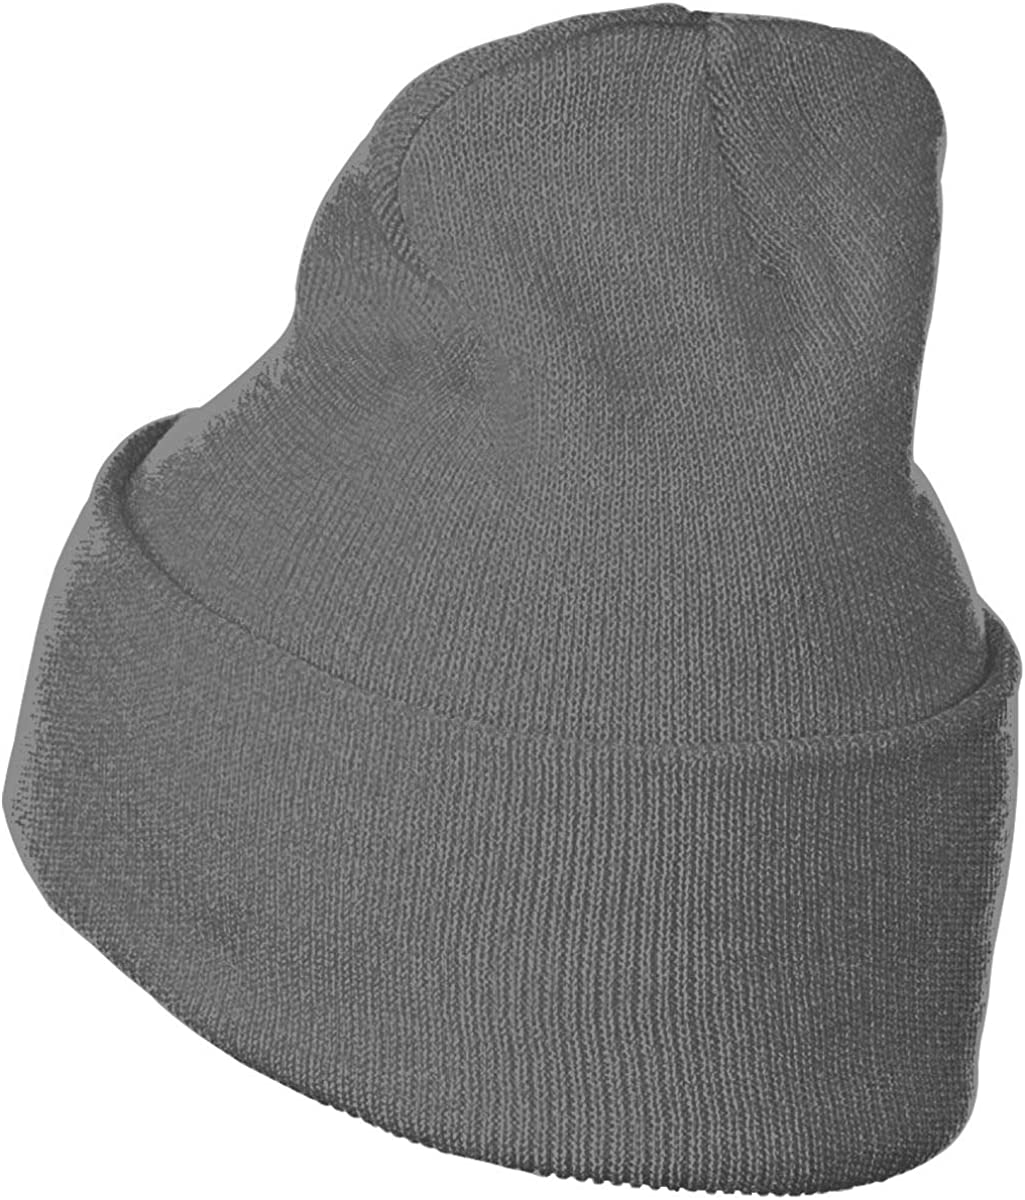 Medical Research and Materials Command Unit Crest Mens Beanie Cap Skull Cap Winter Warm Knitting Hats.